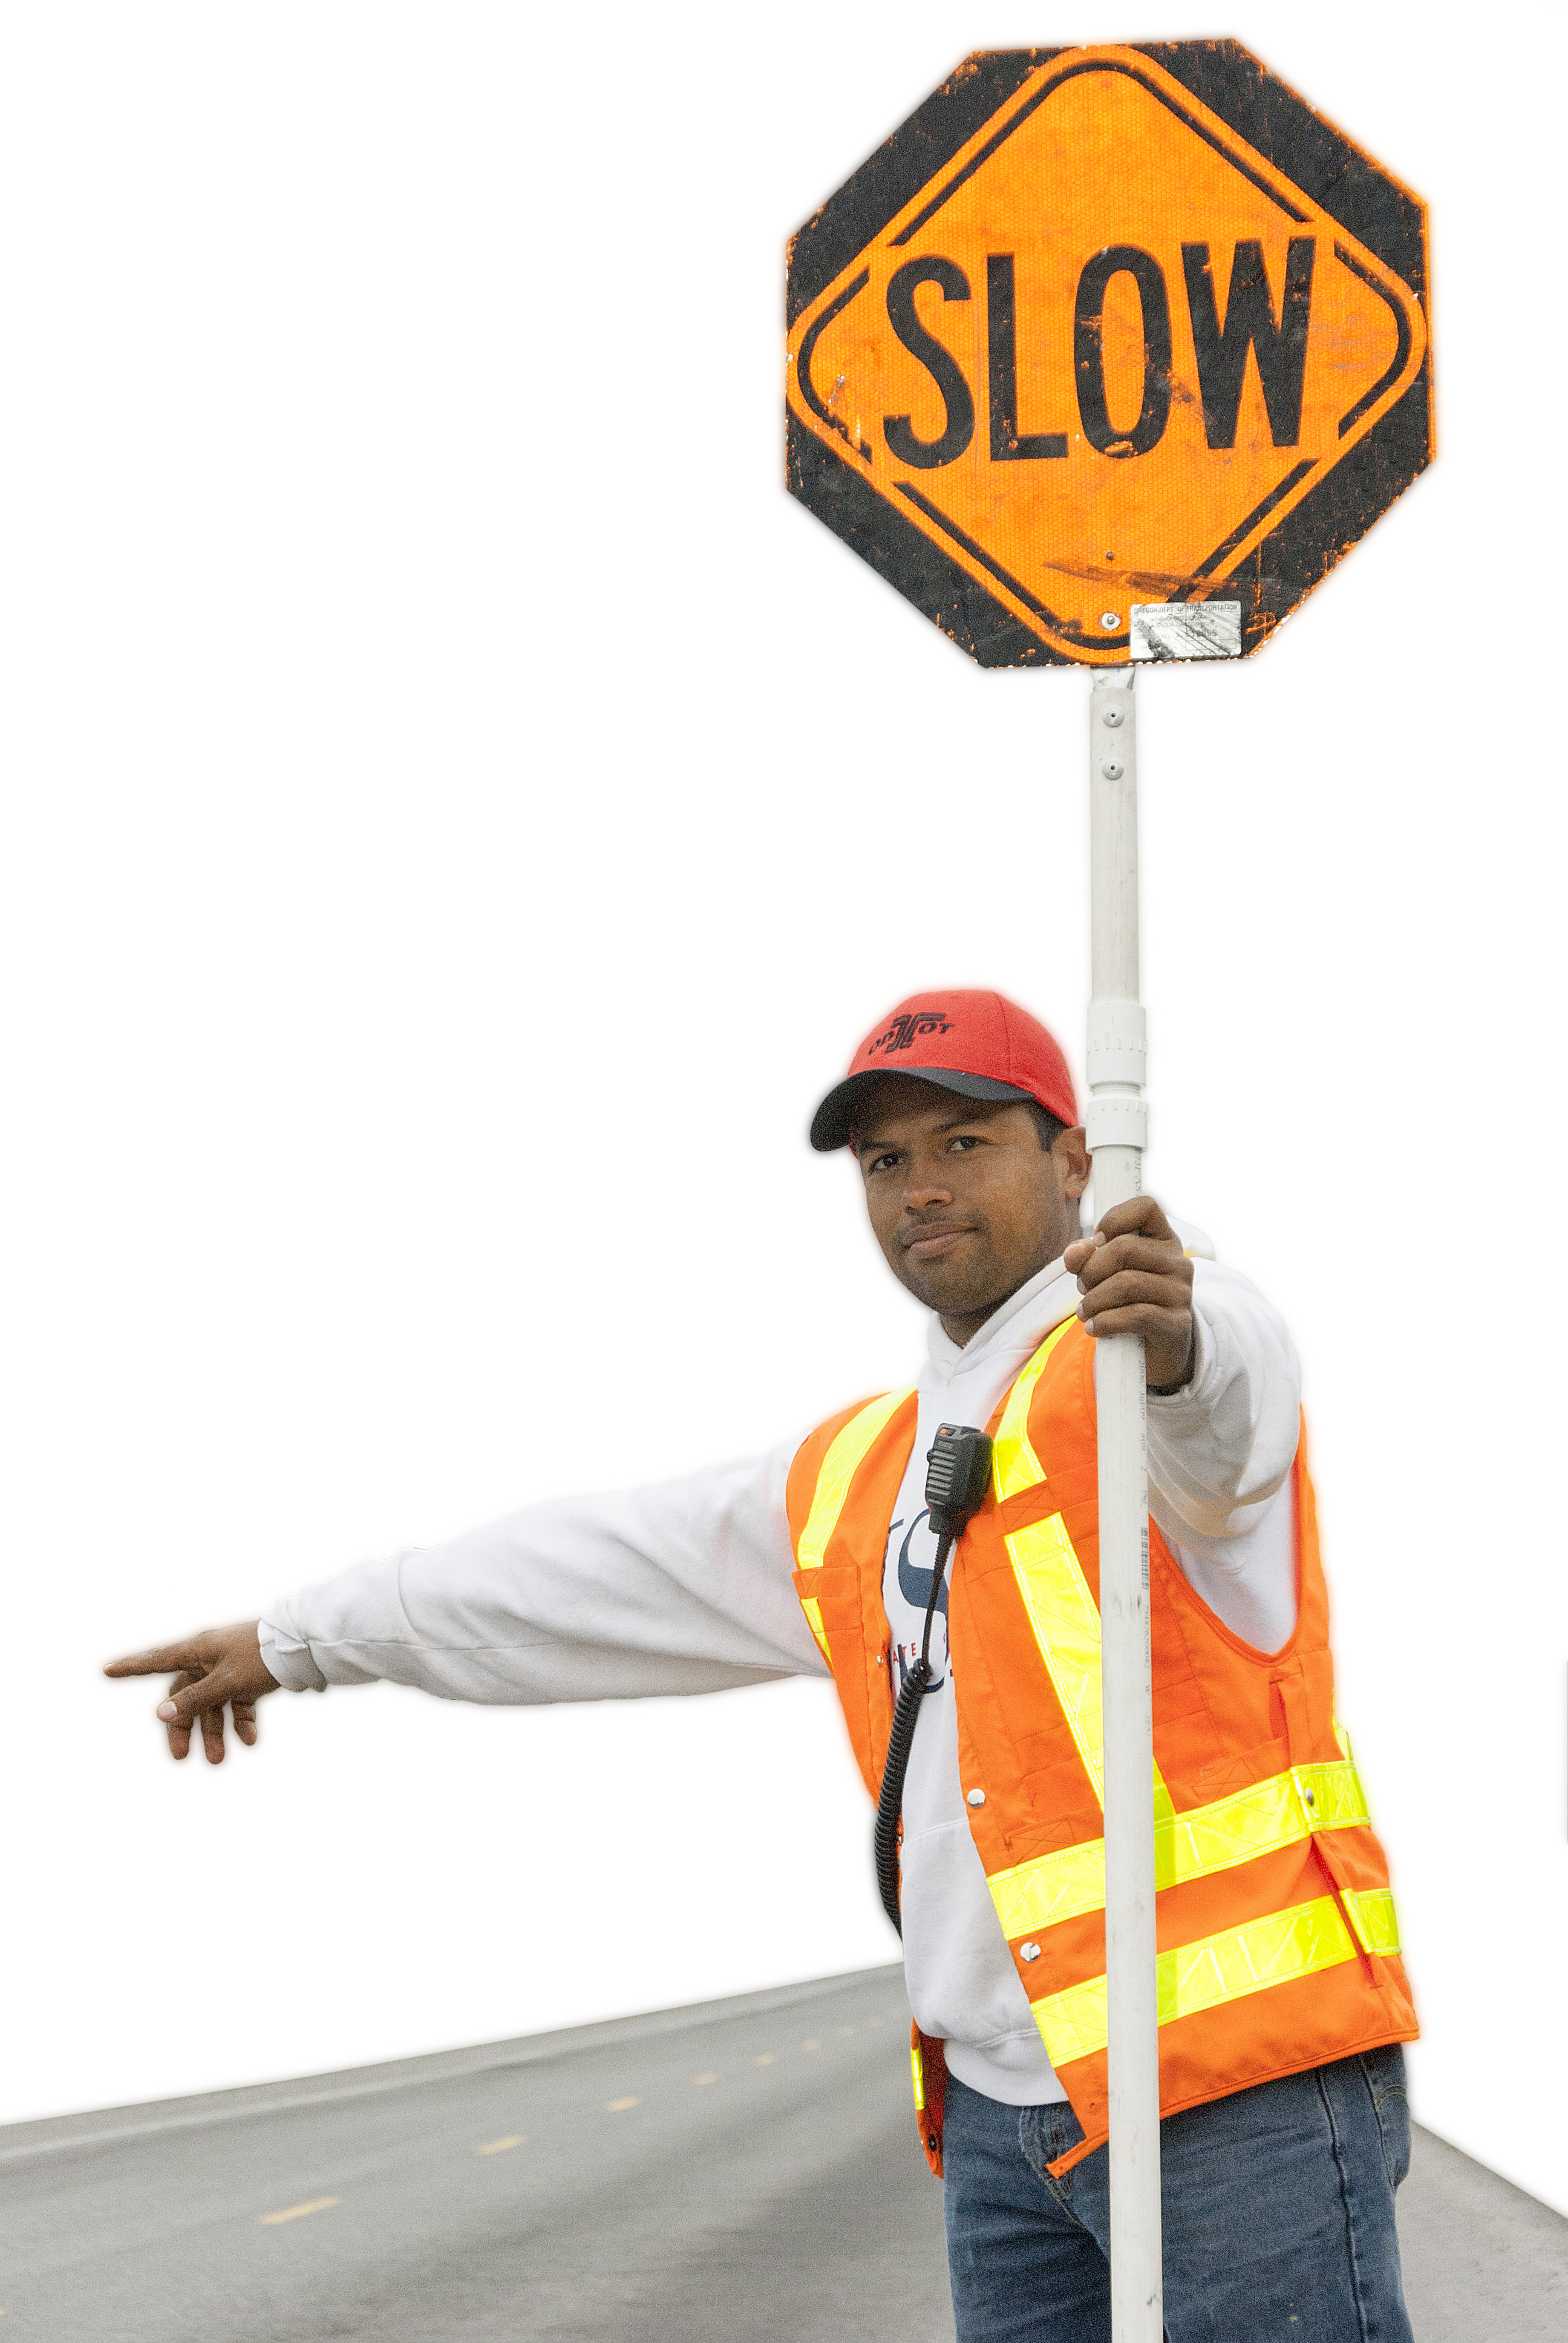 Flagger pointing holding slow sign